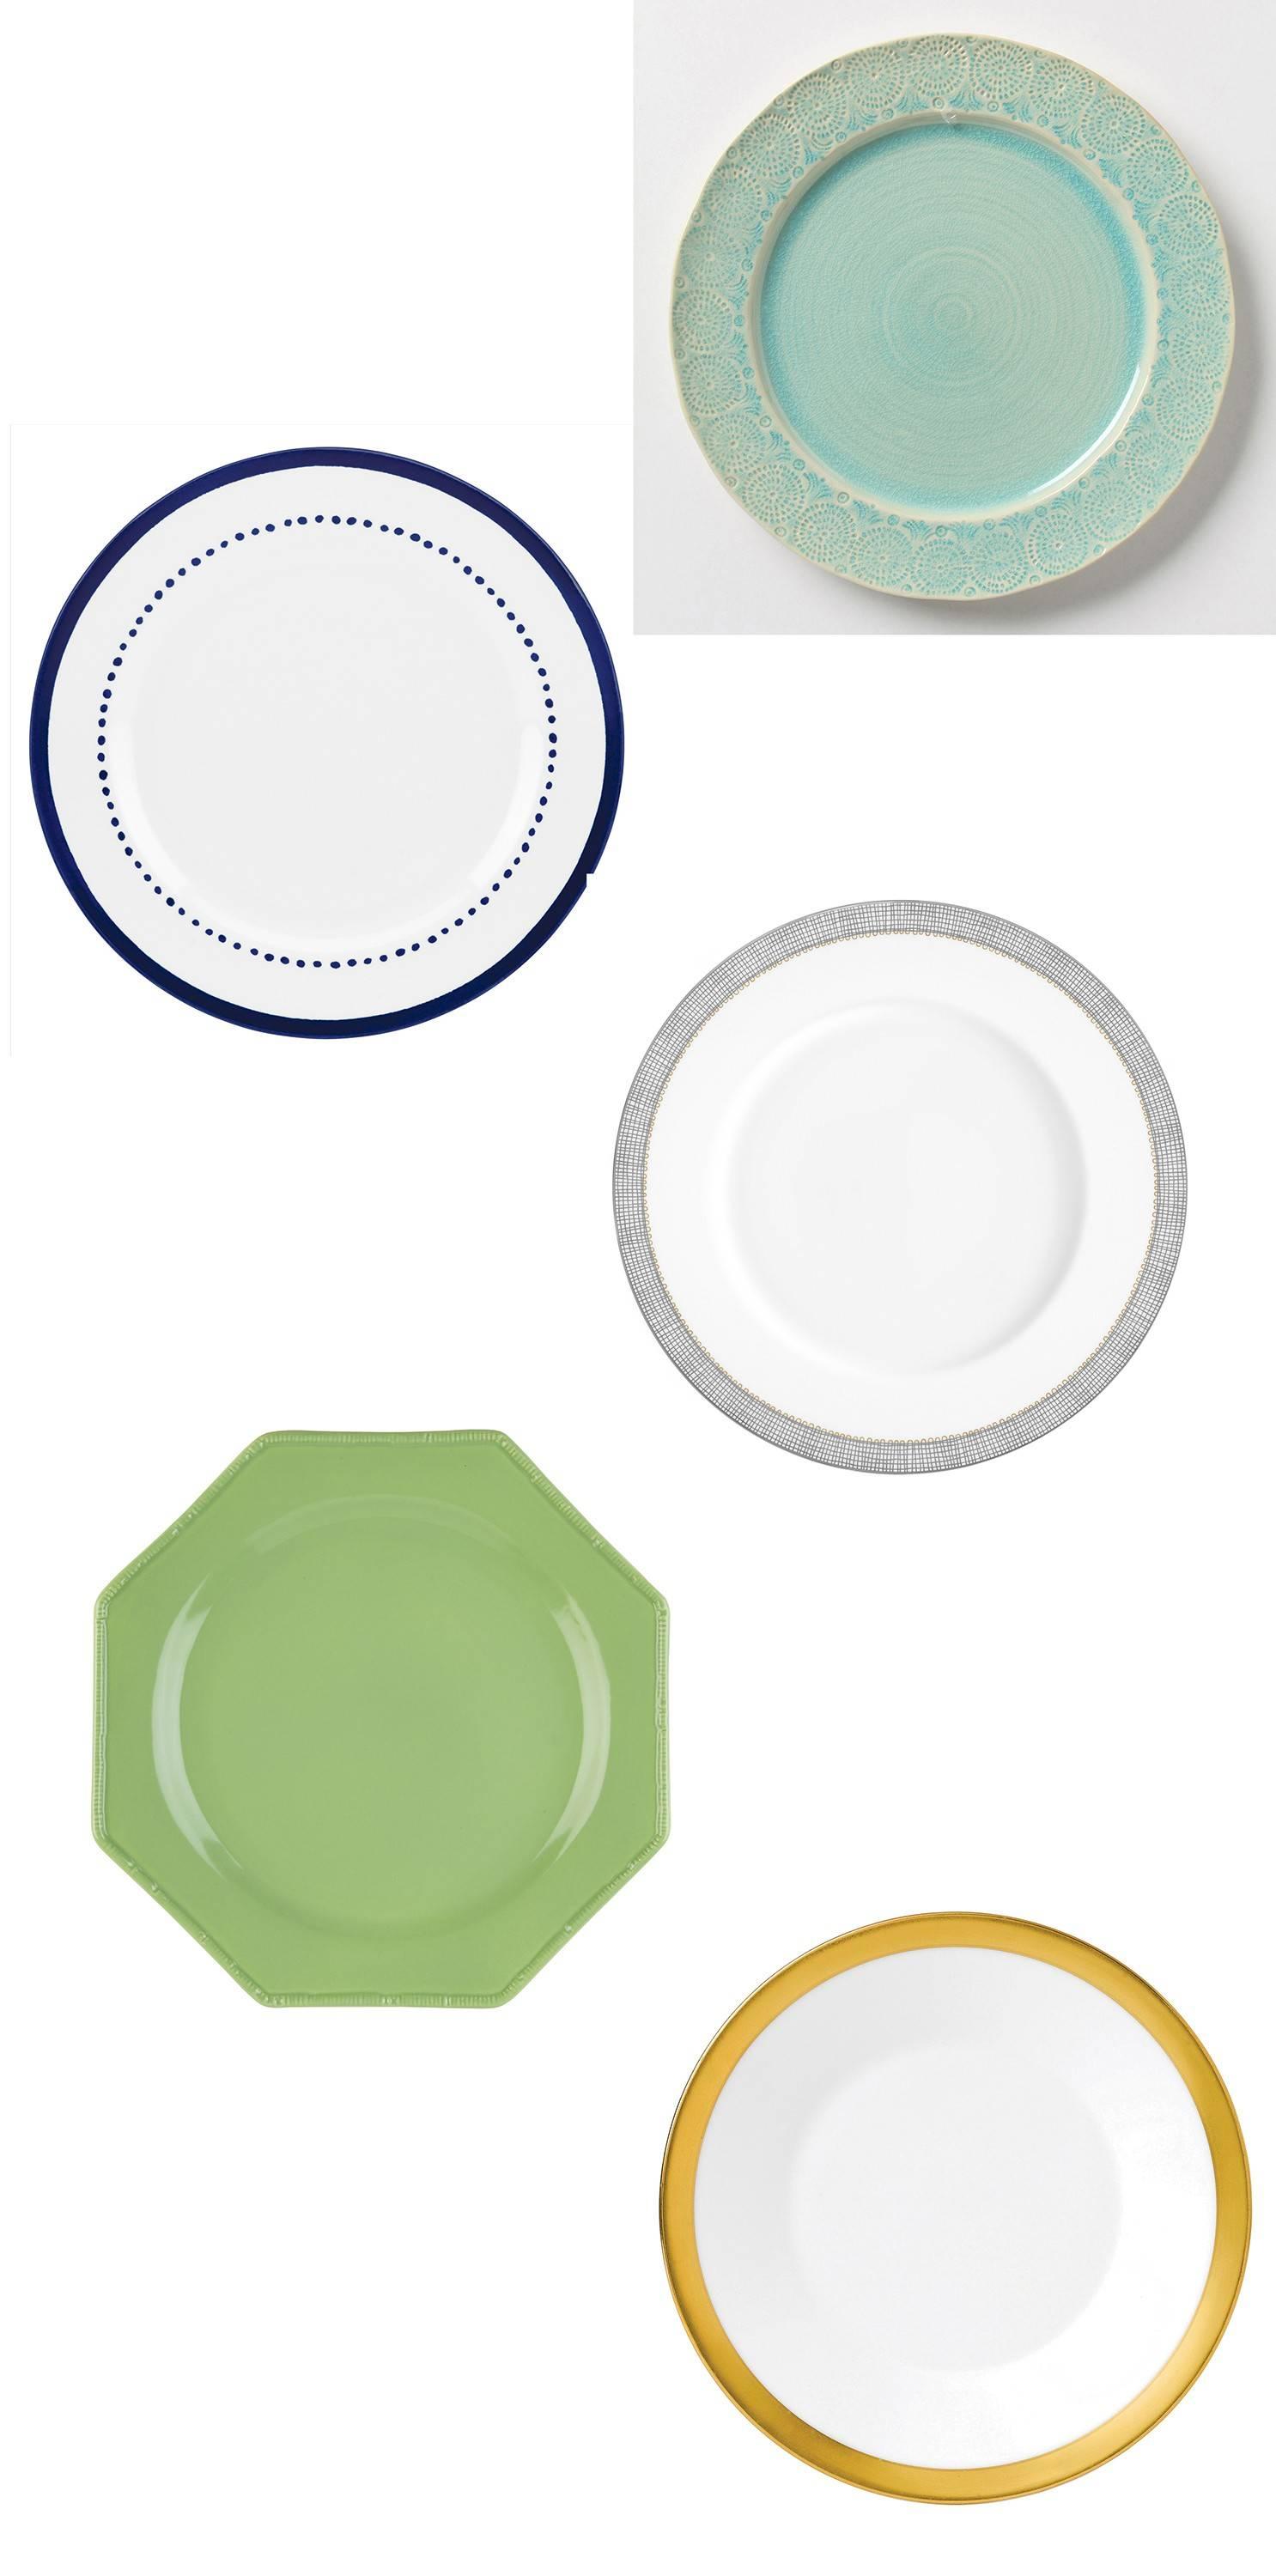 Dinnerware can elevate any meal and carries with it years of nostalgia. From top to bottom: 1-Anthrolpologie's Old-Havana Dinnerware; 2-Charlotte Street Dinner Plate; 3-Vera Wang's Gilded Weave; 4-Oscar de la Renta's Pavilion Dinner Plate; 5-Jasper Conran's Gold-Banded Plate.